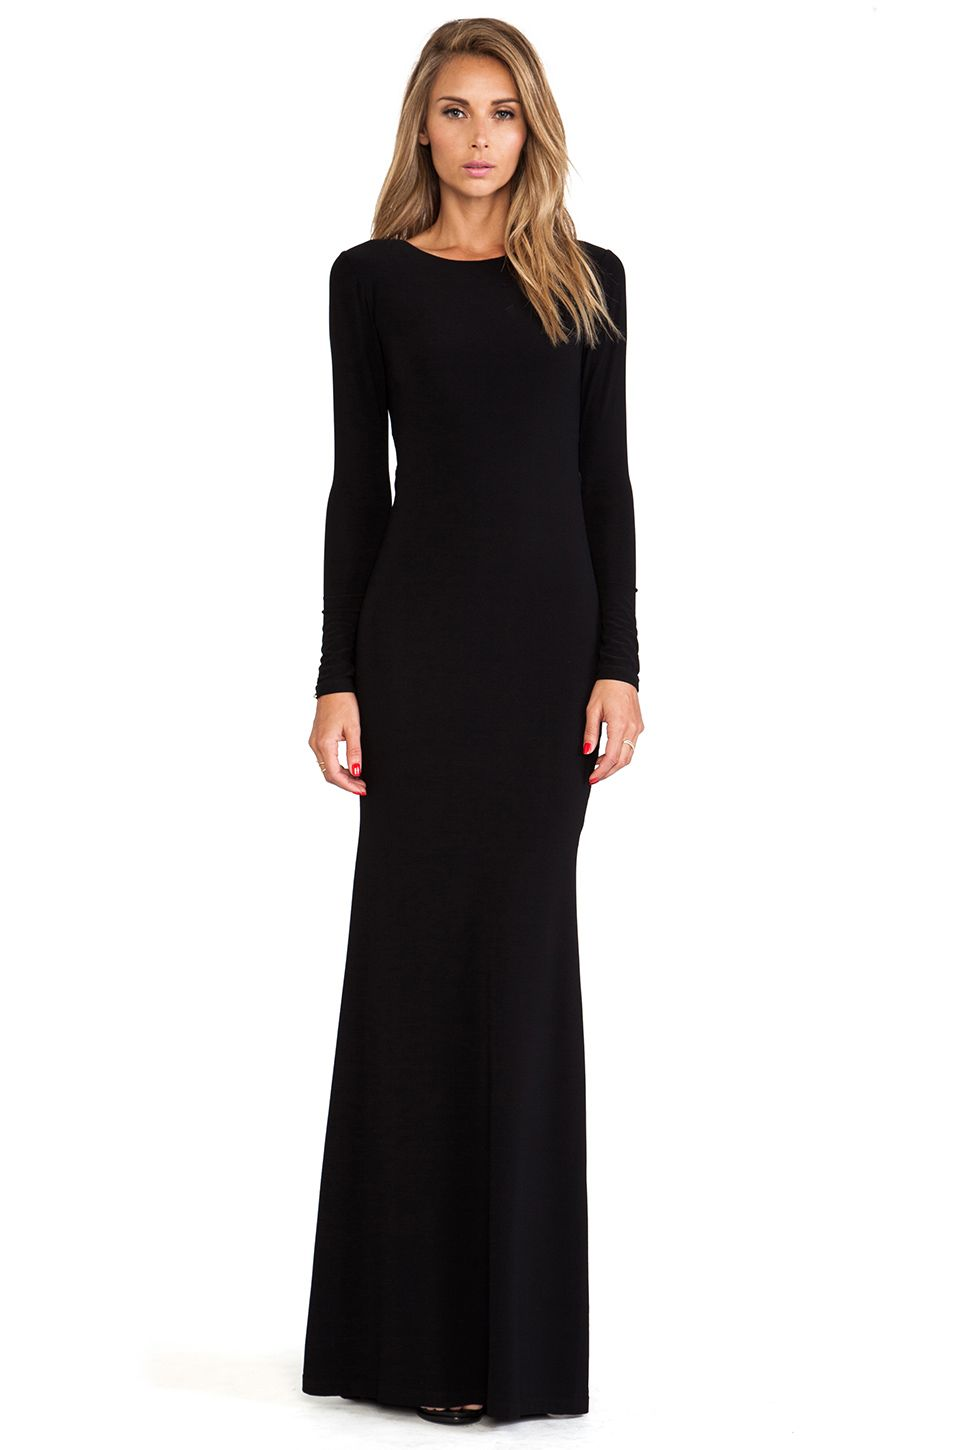 41++ Black maxi dress with sleeves info